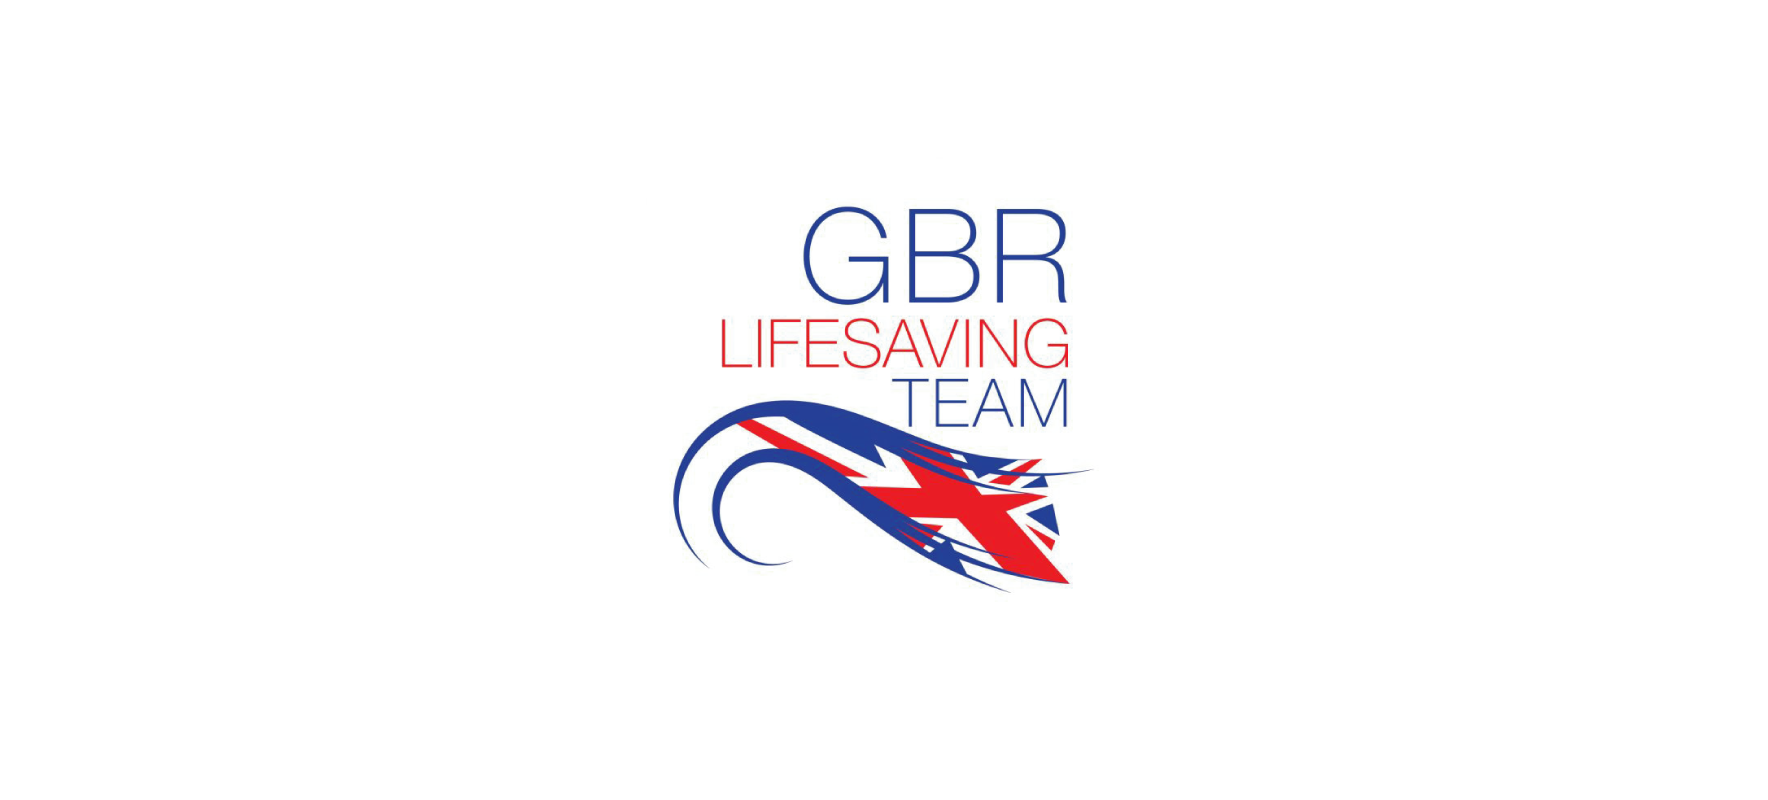 GBR Lifesaving